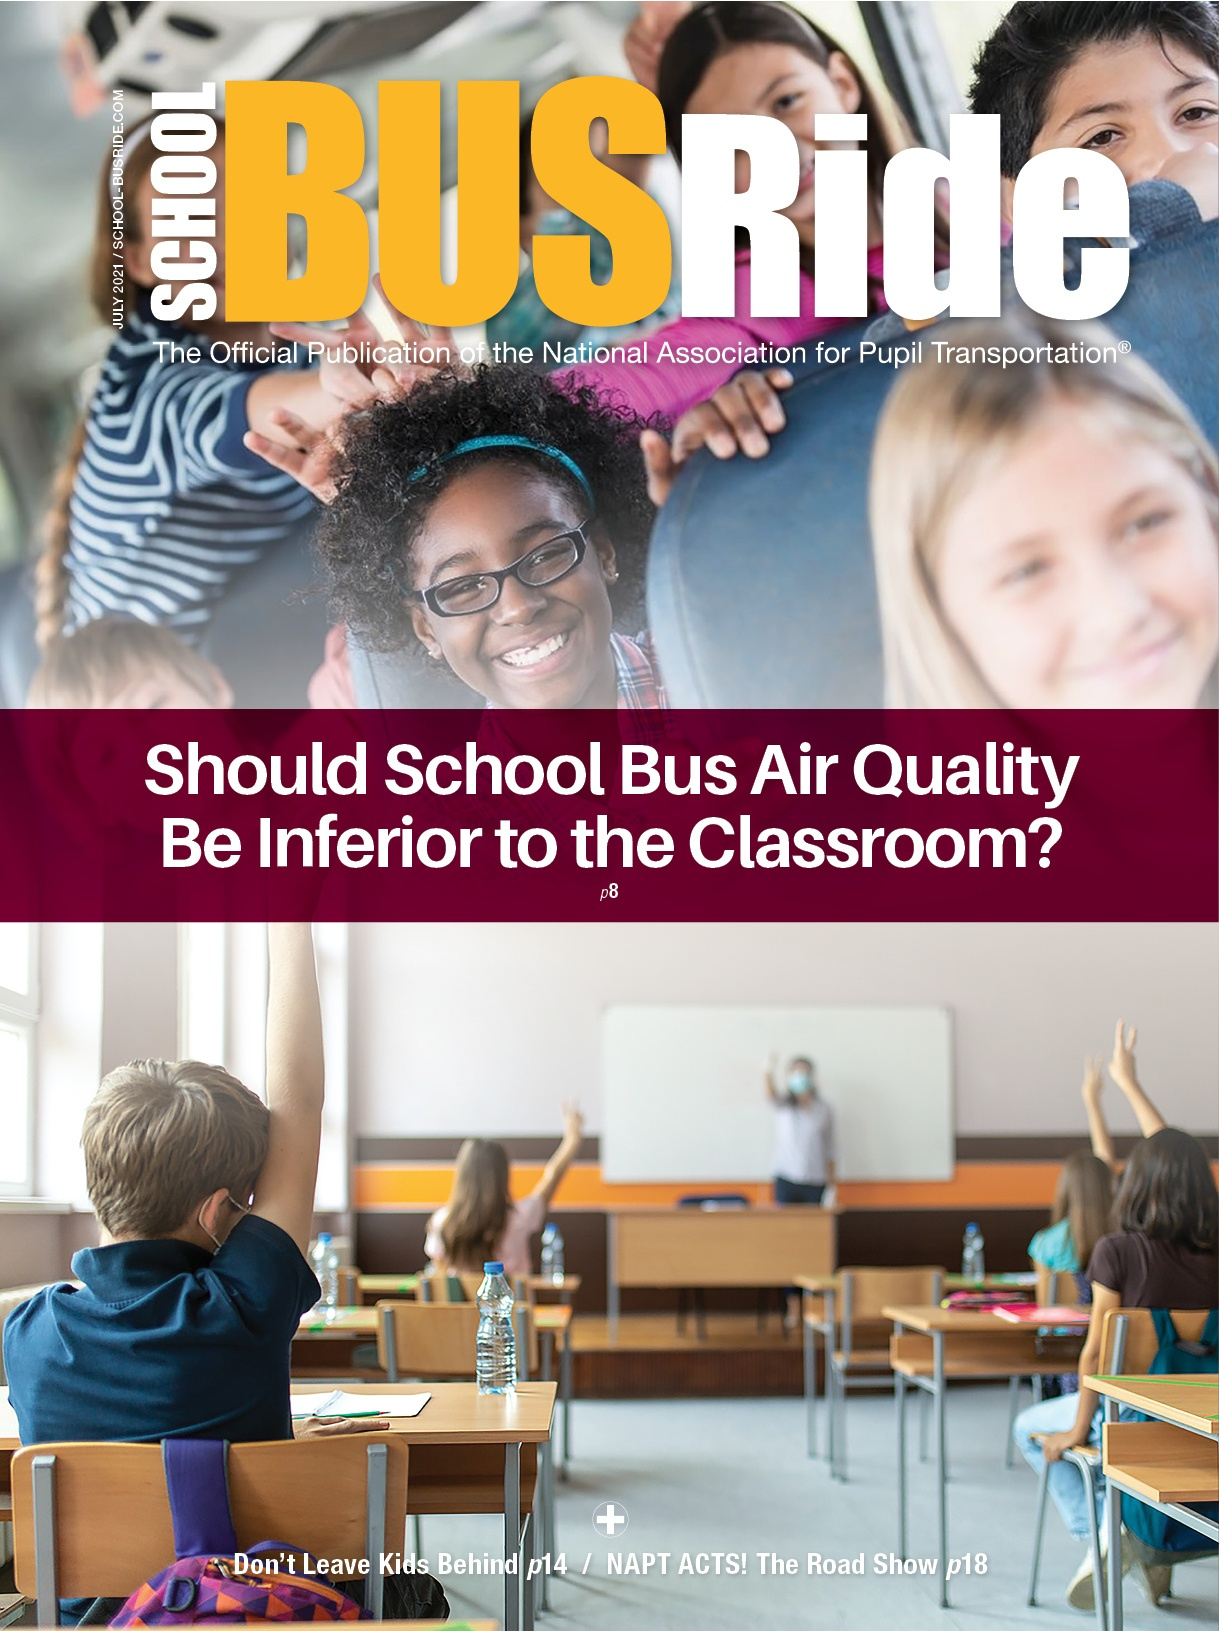 Should Air Quality on the Bus be Inferior to the Classroom?